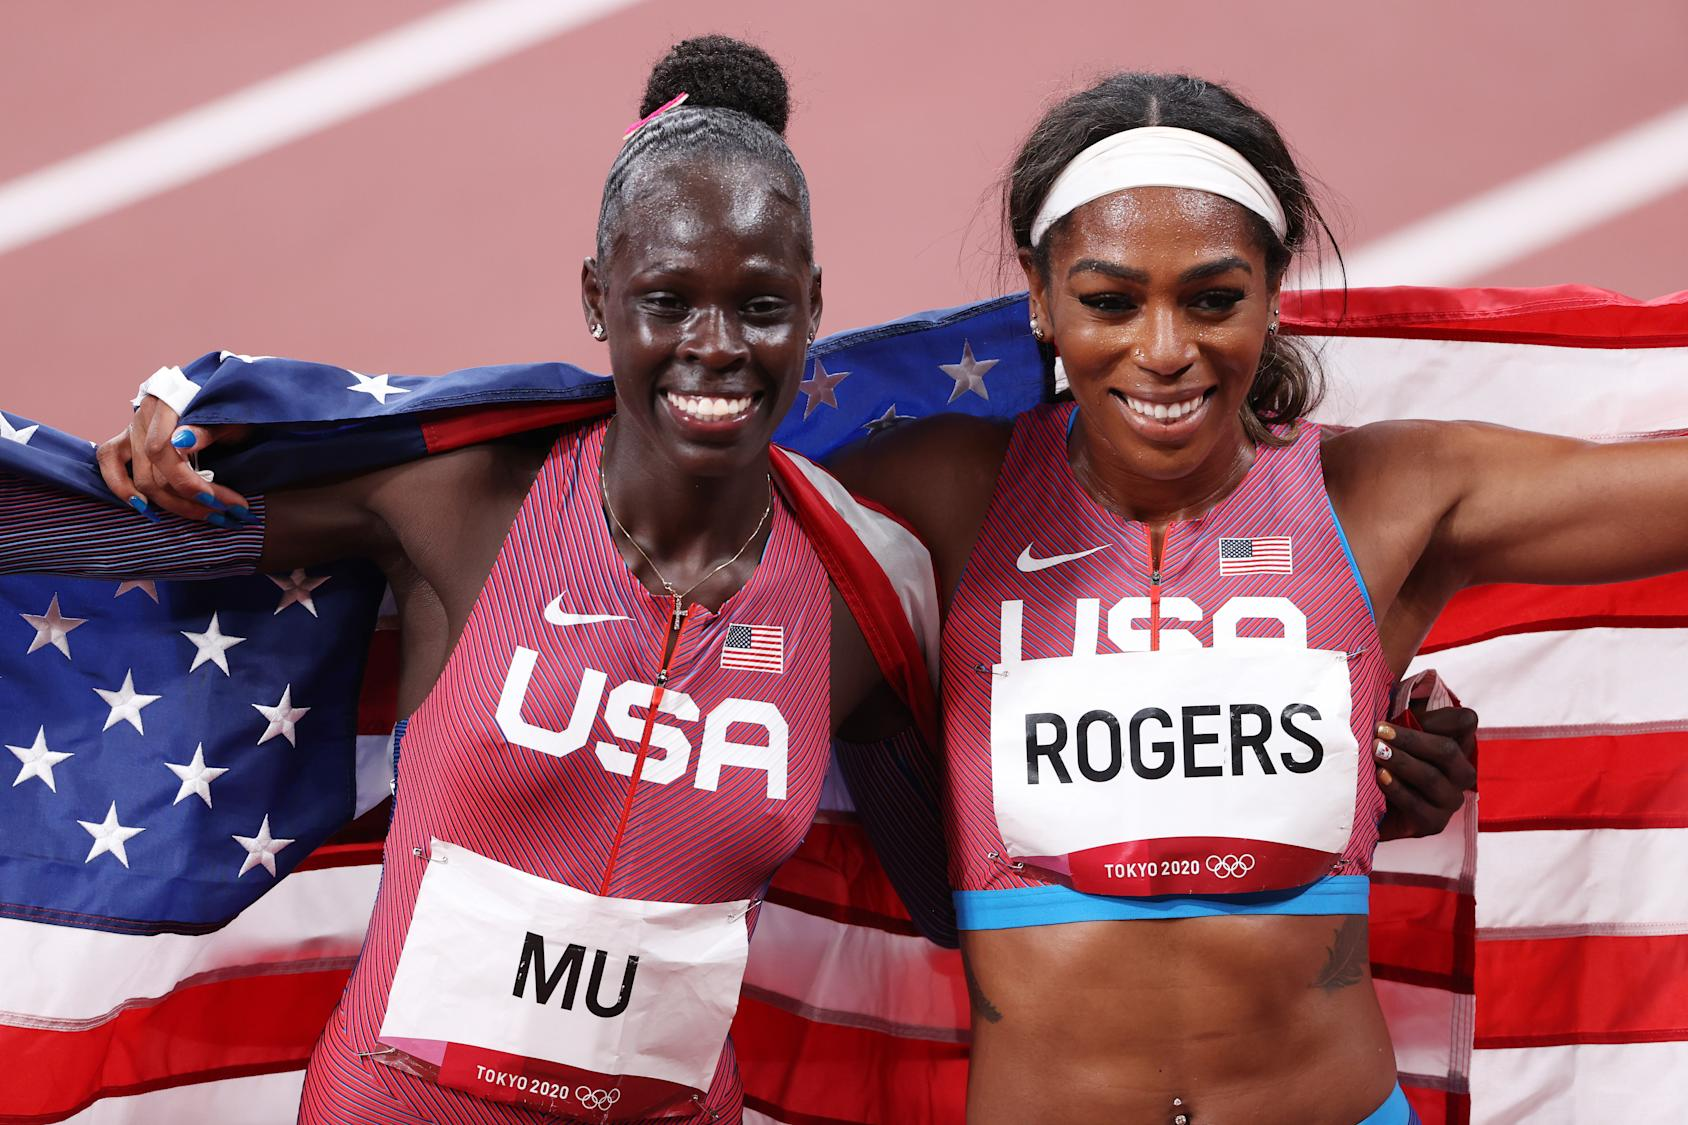 American teenager Athing Mu dominates women's 800-meter race to win Olympic gold - Yahoo Canada Sports